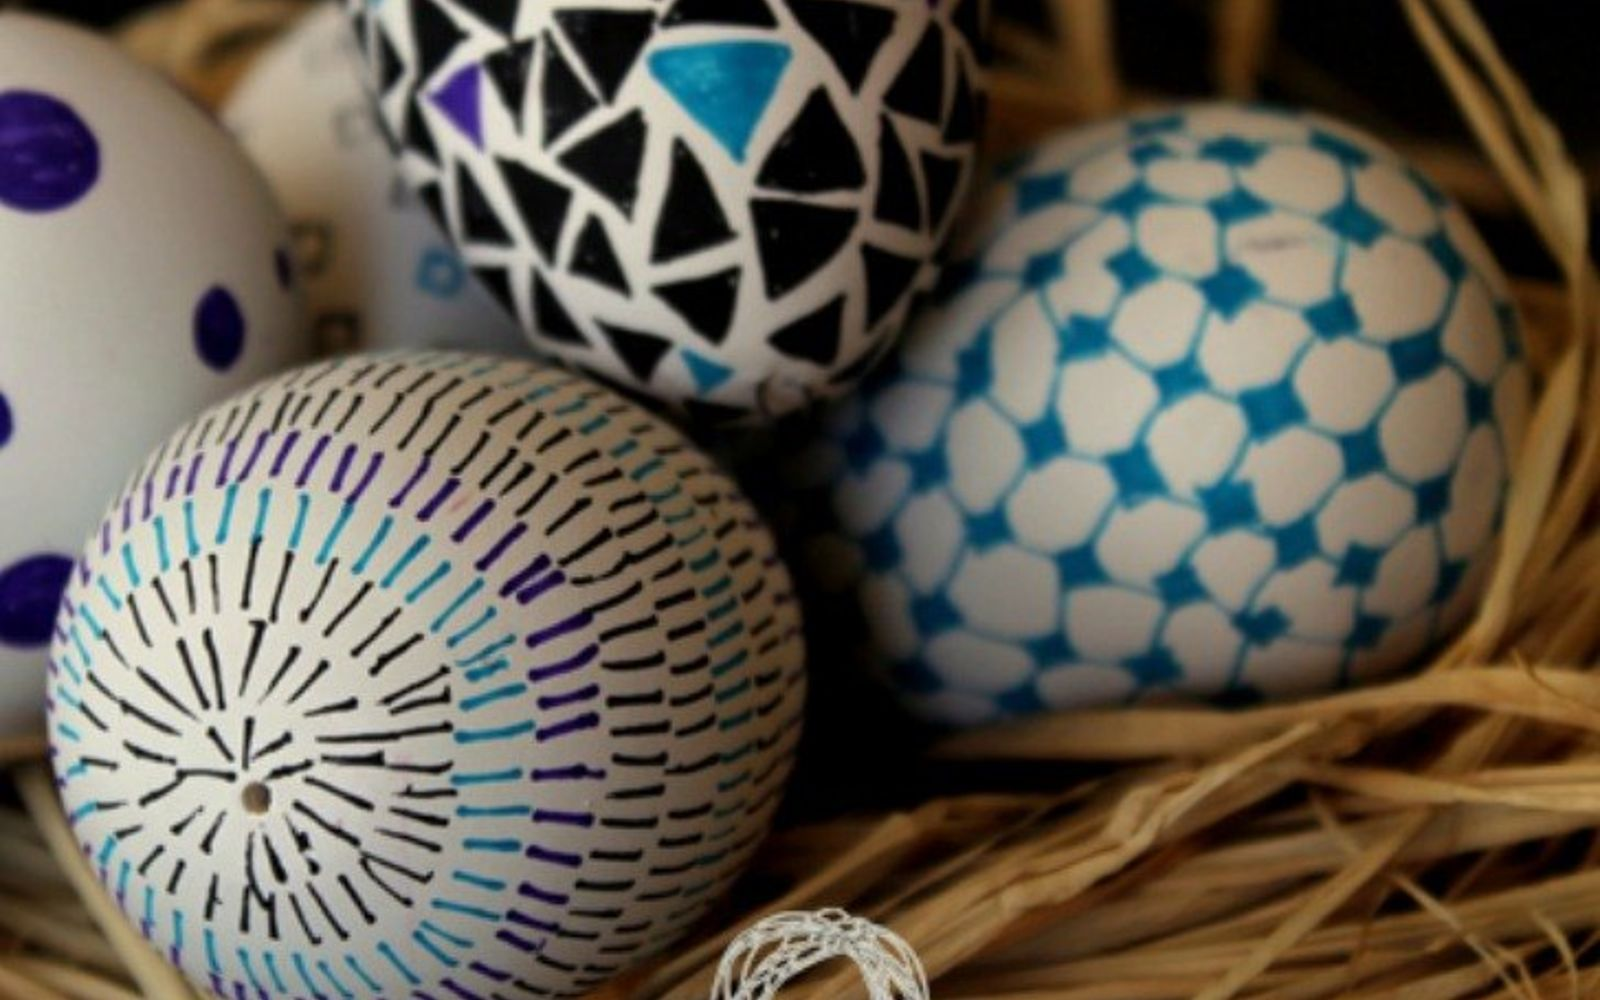 s 23 totally different ways to decorate real eggs this easter, crafts, easter decorations, Use fine point Sharpies for delicate designs